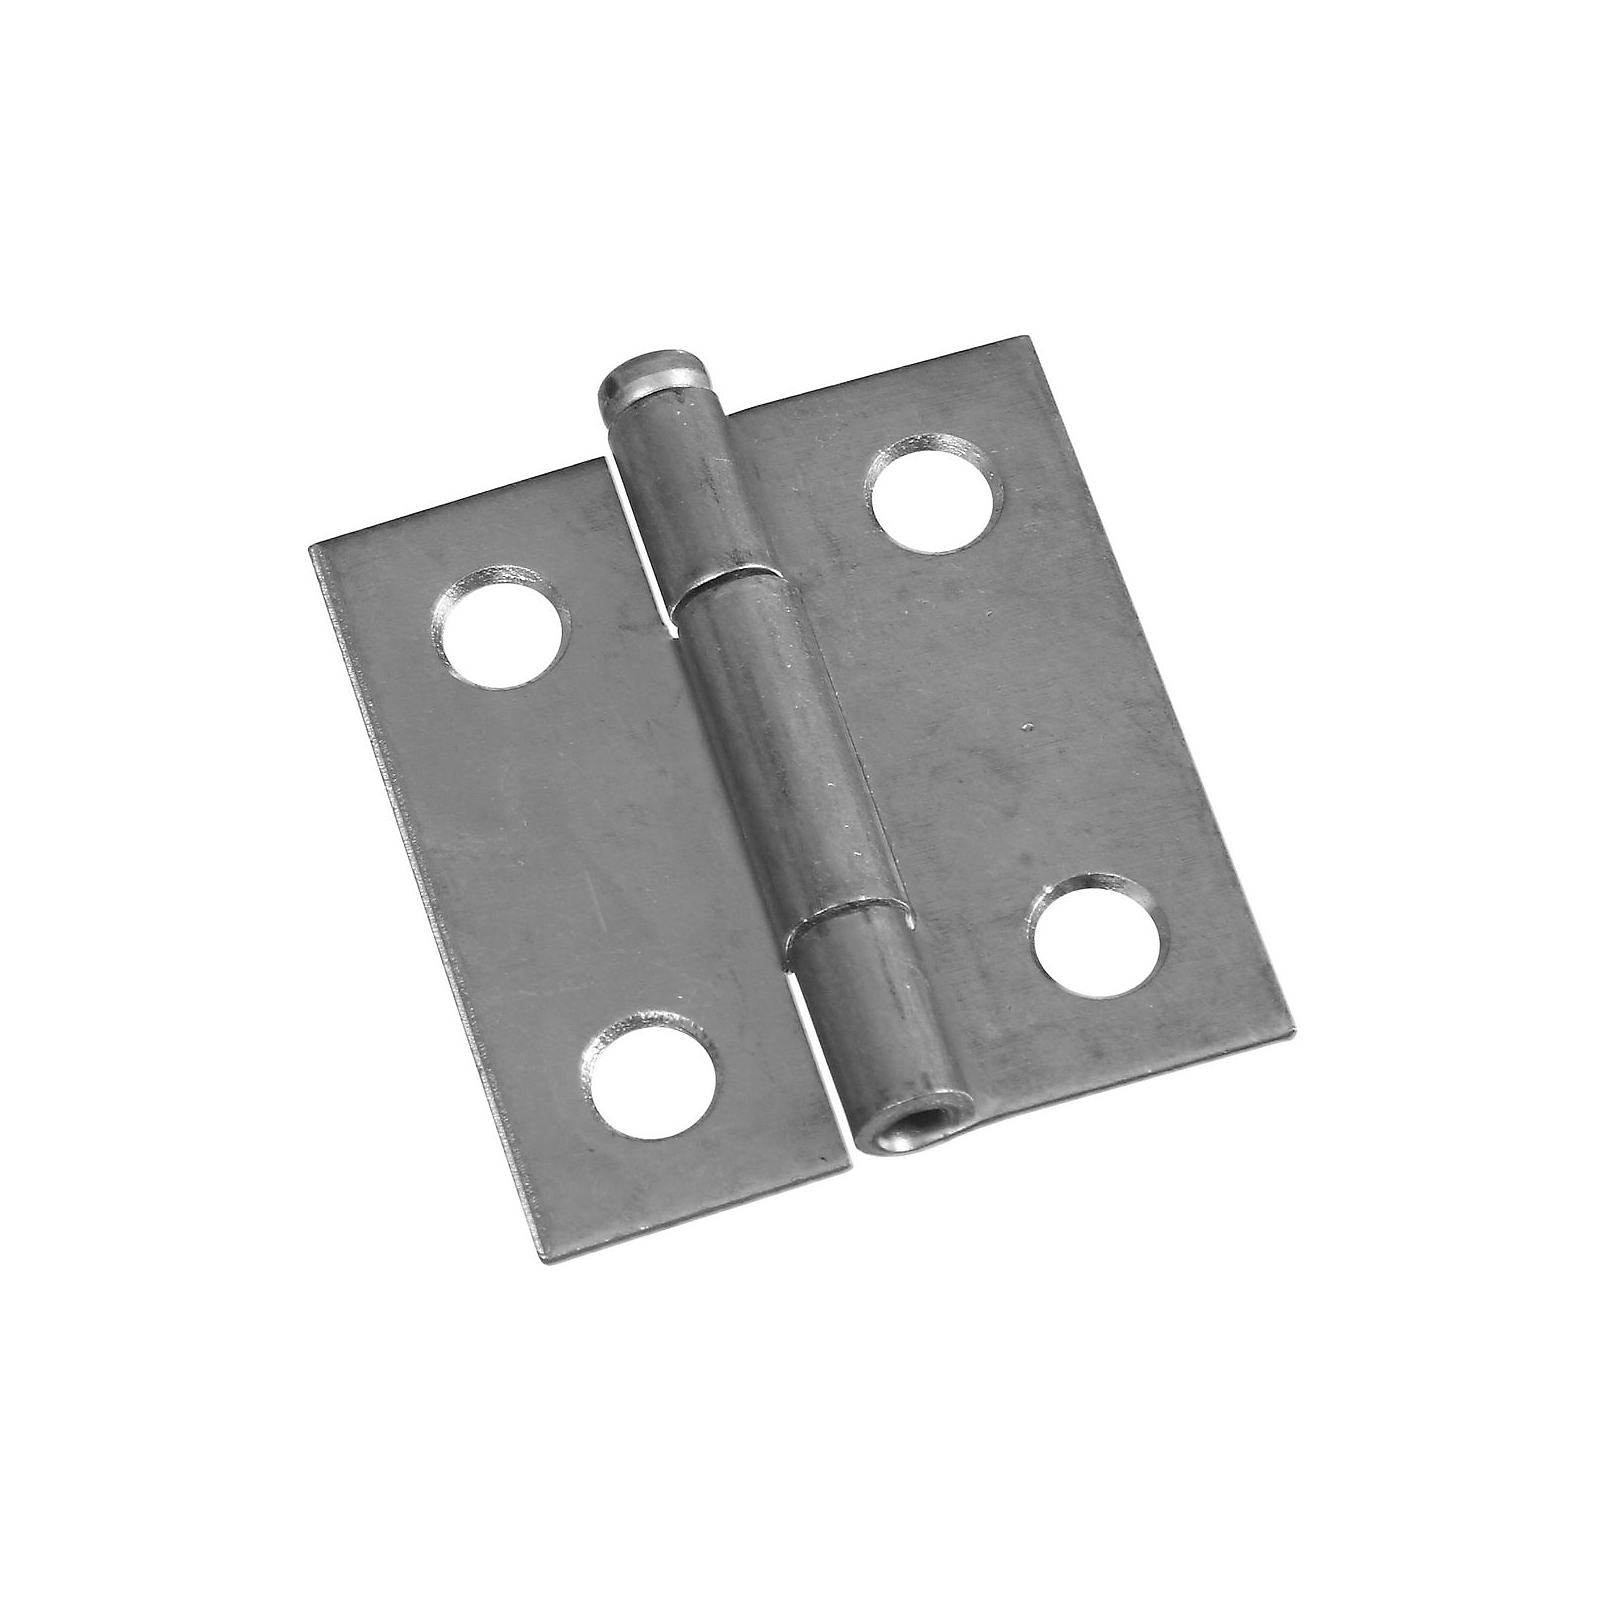 National Hardware N142-067 V508 Removable Pin Hinges in Brass 2 pack